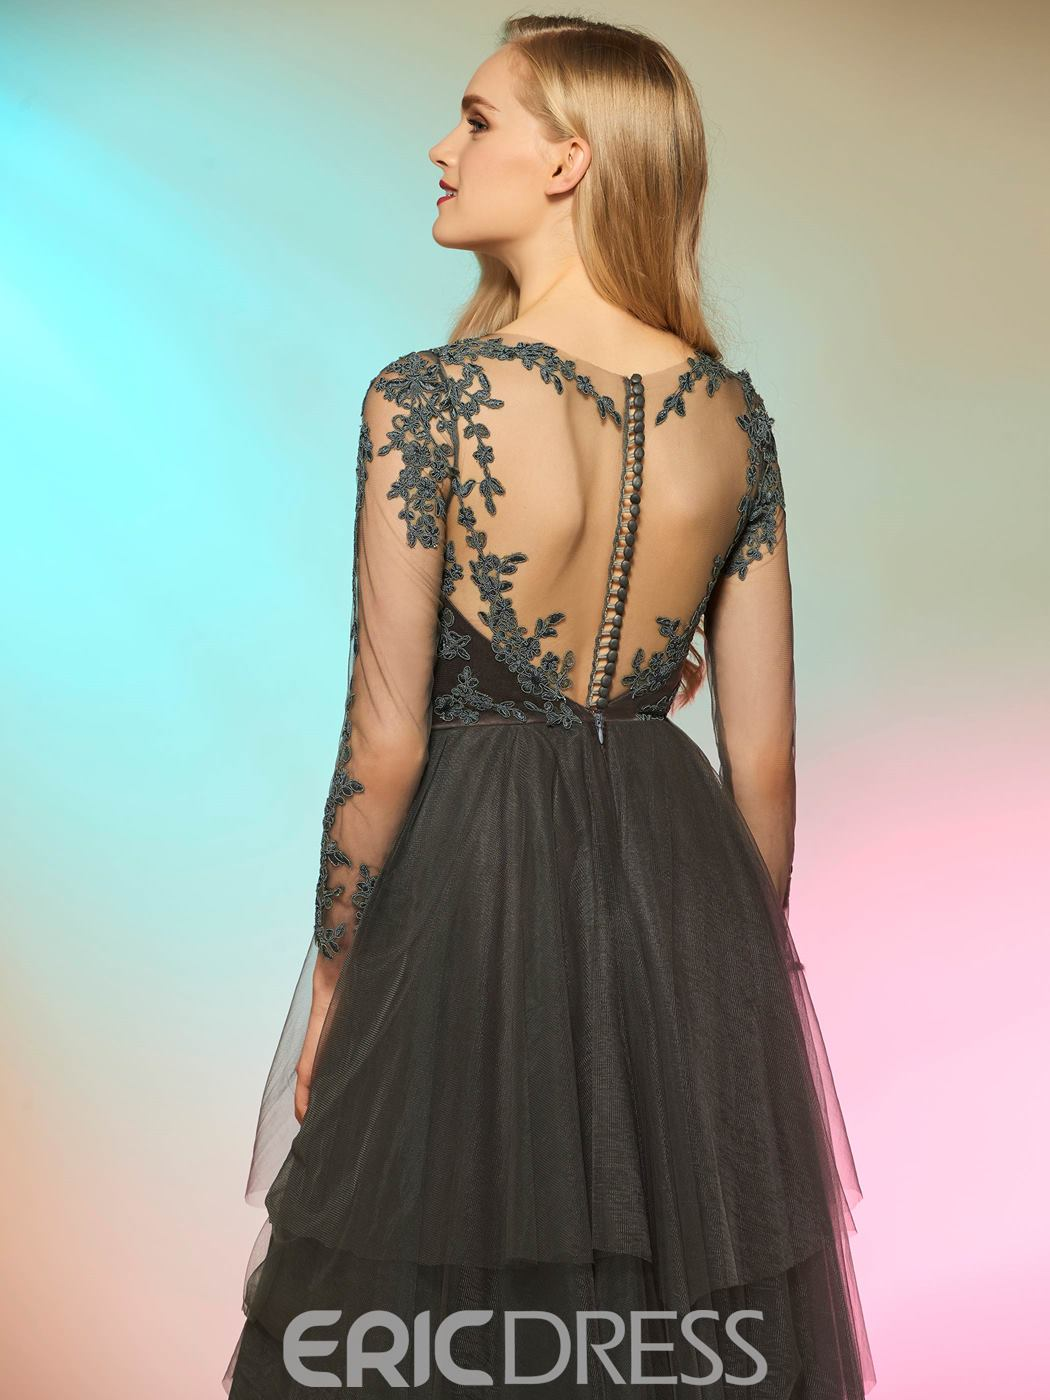 Ericdress Fancy A Line Lace Applique Floor Length Long Sleeve Prom Dress